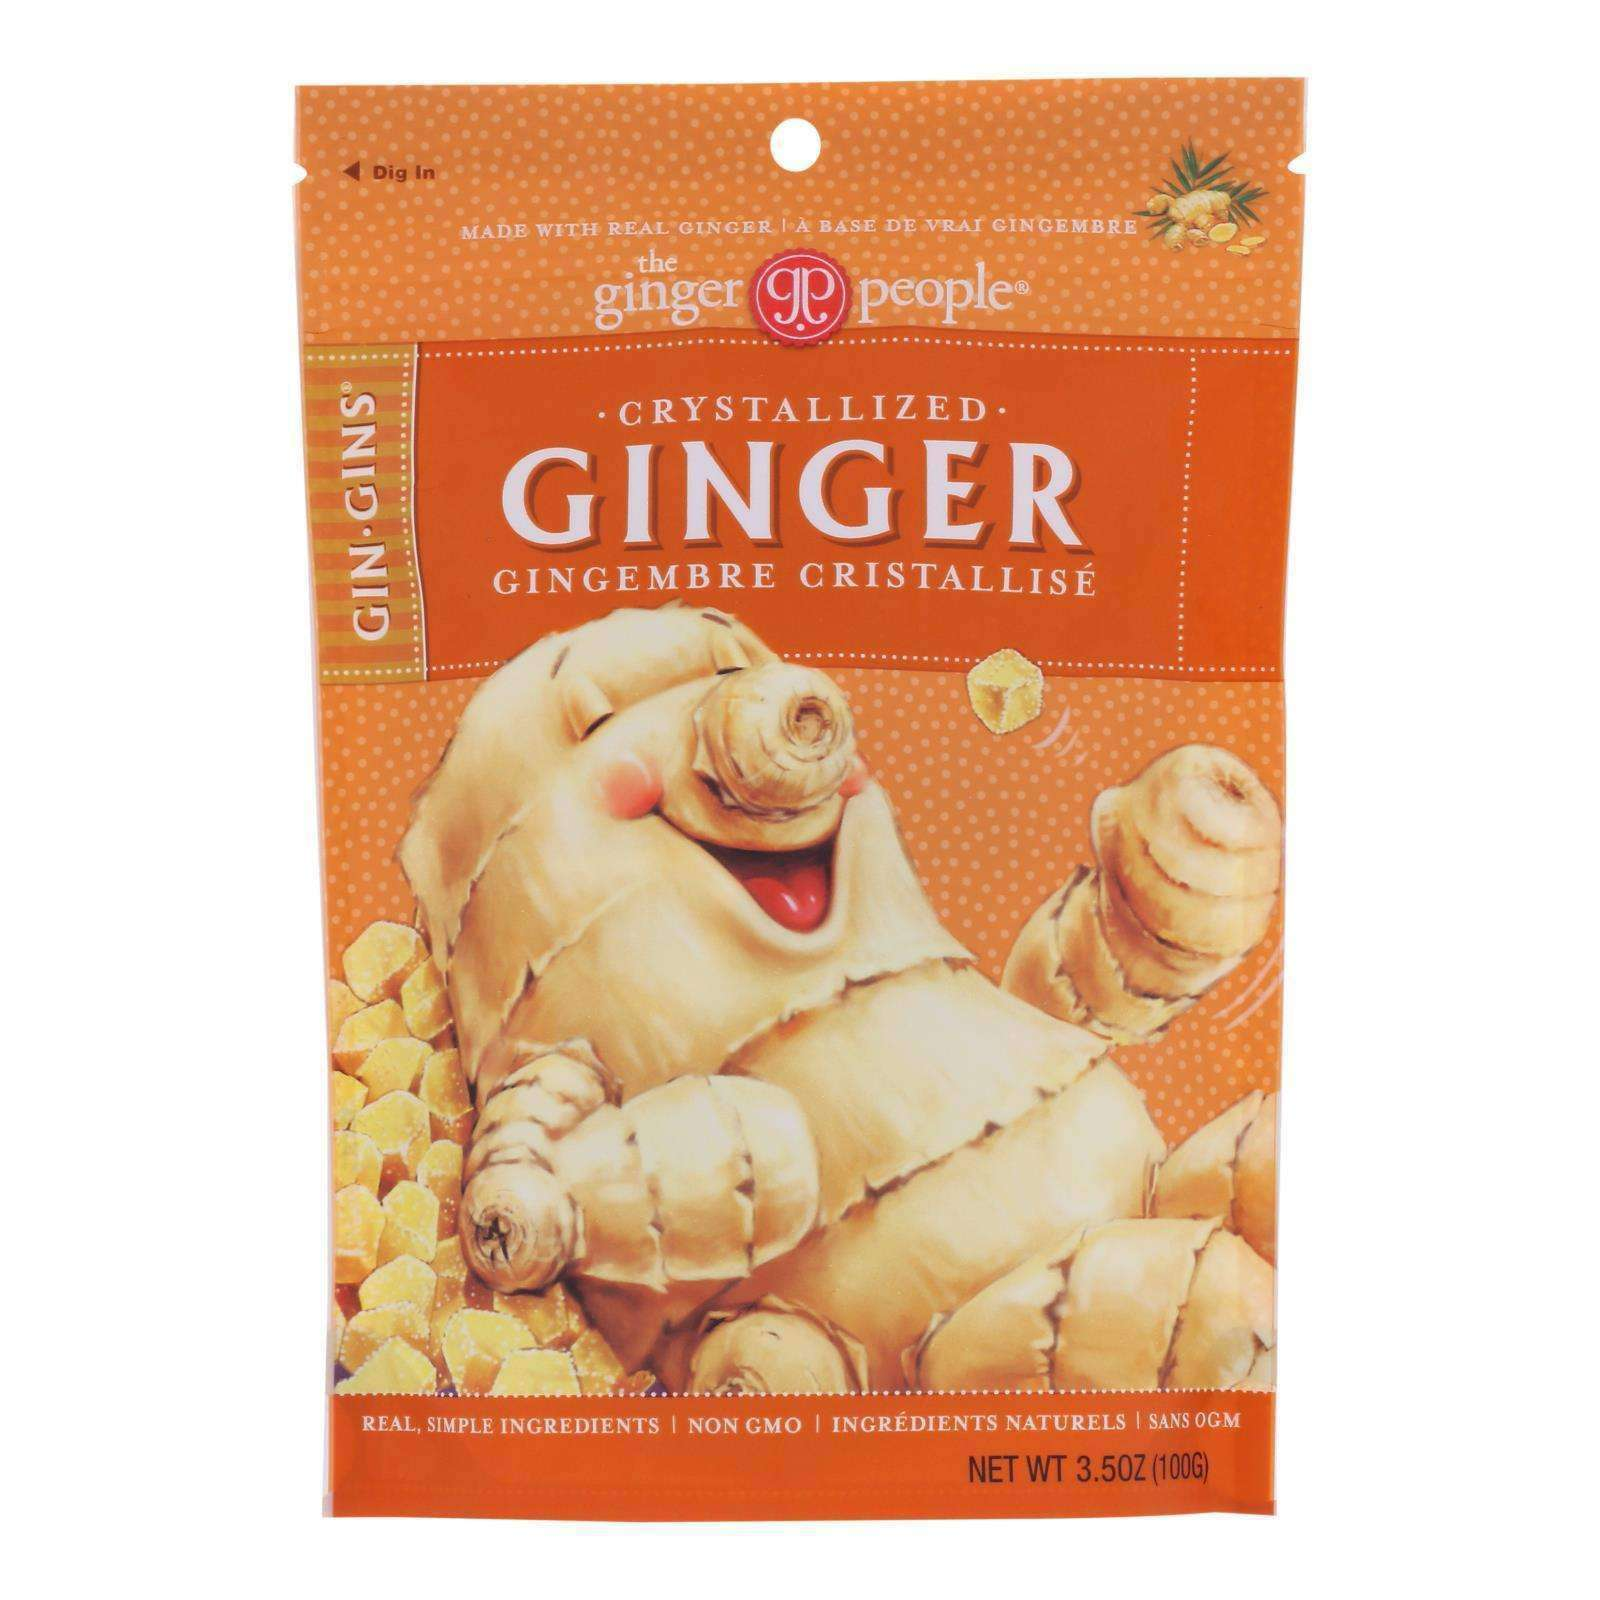 Ginger People - Crystallized Ginger - Case Of 12 - 3.5 Oz. - BeeGreen